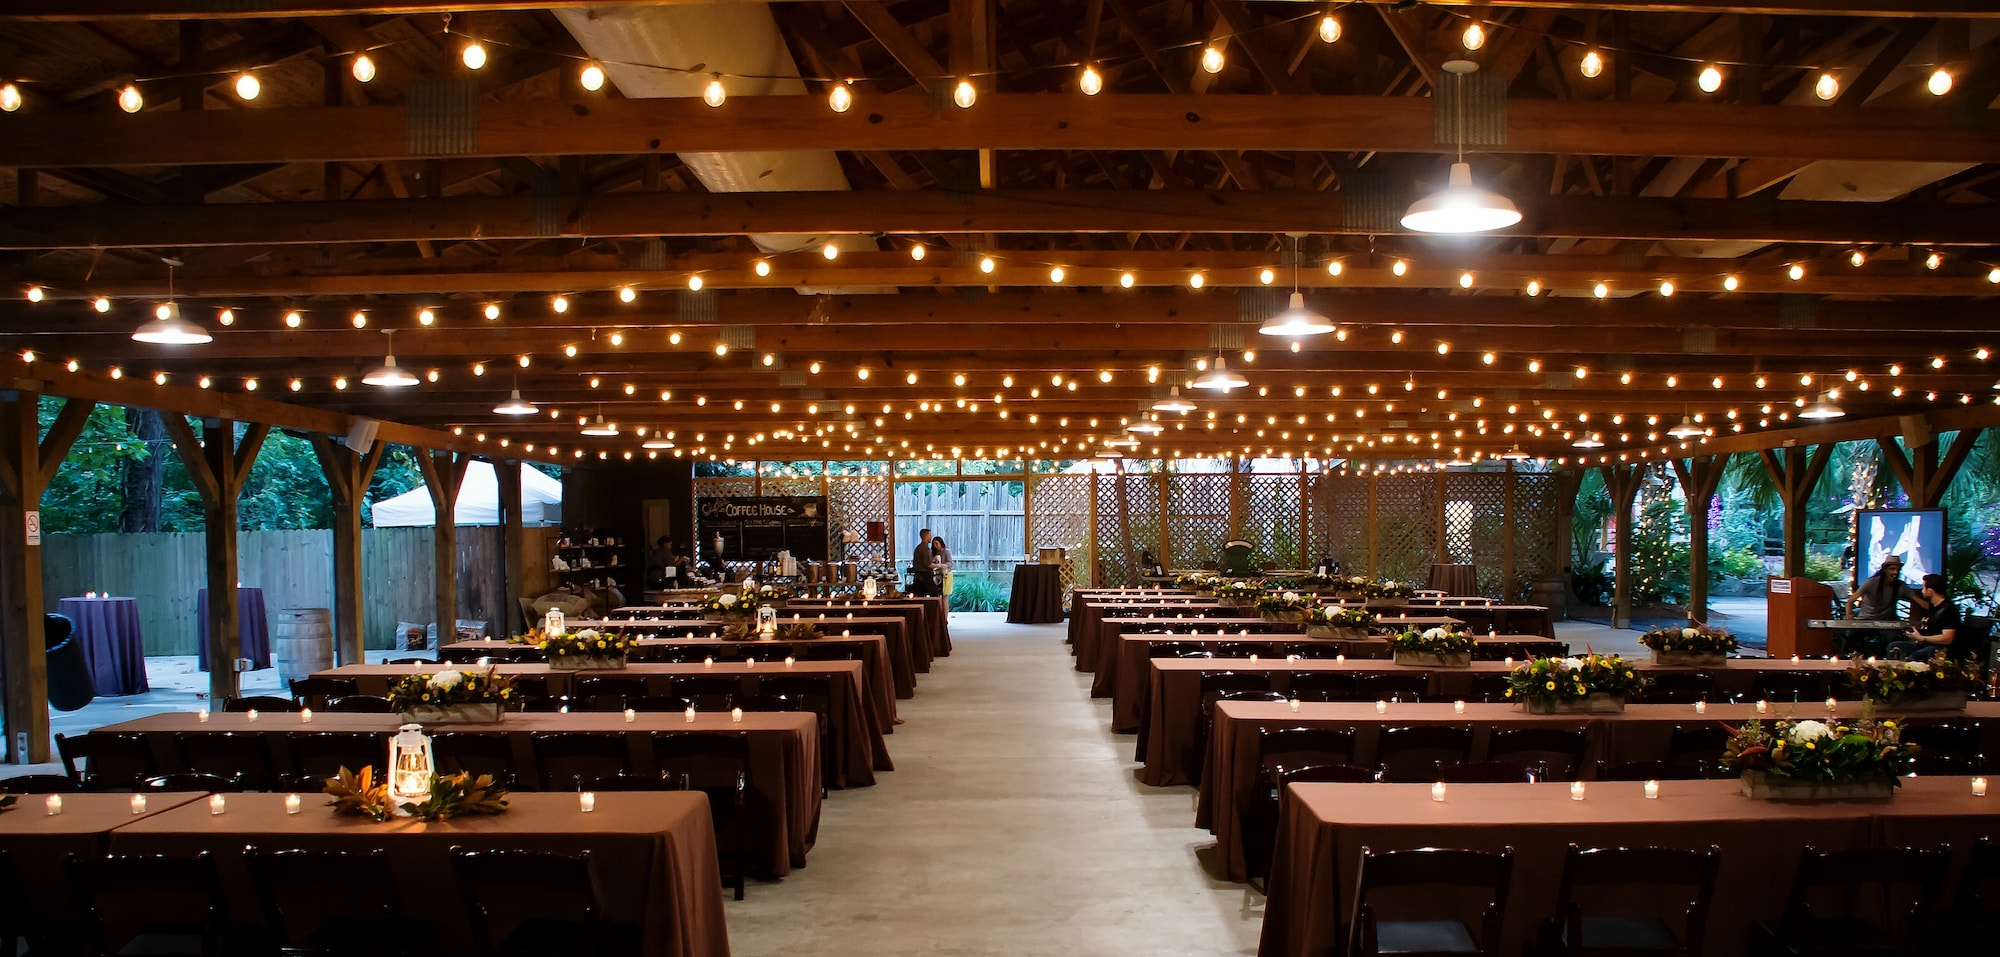 Safari Camp is a rustic outdoor Columbia, SC event venue.